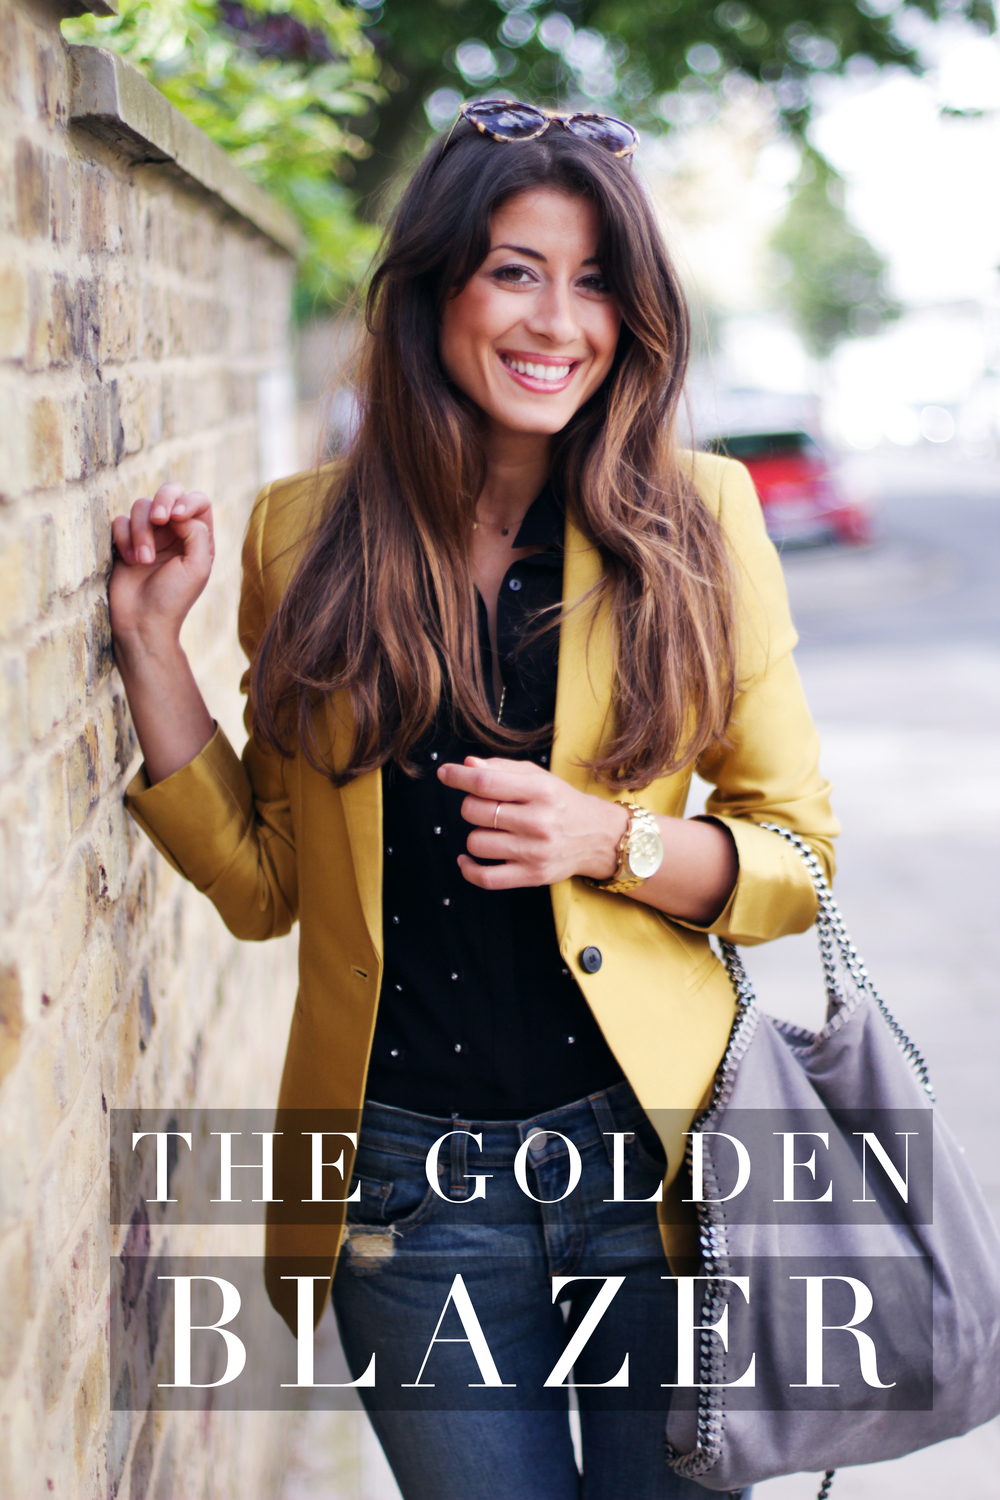 OOTD: The Golden Blazer — Mimi Ikonn